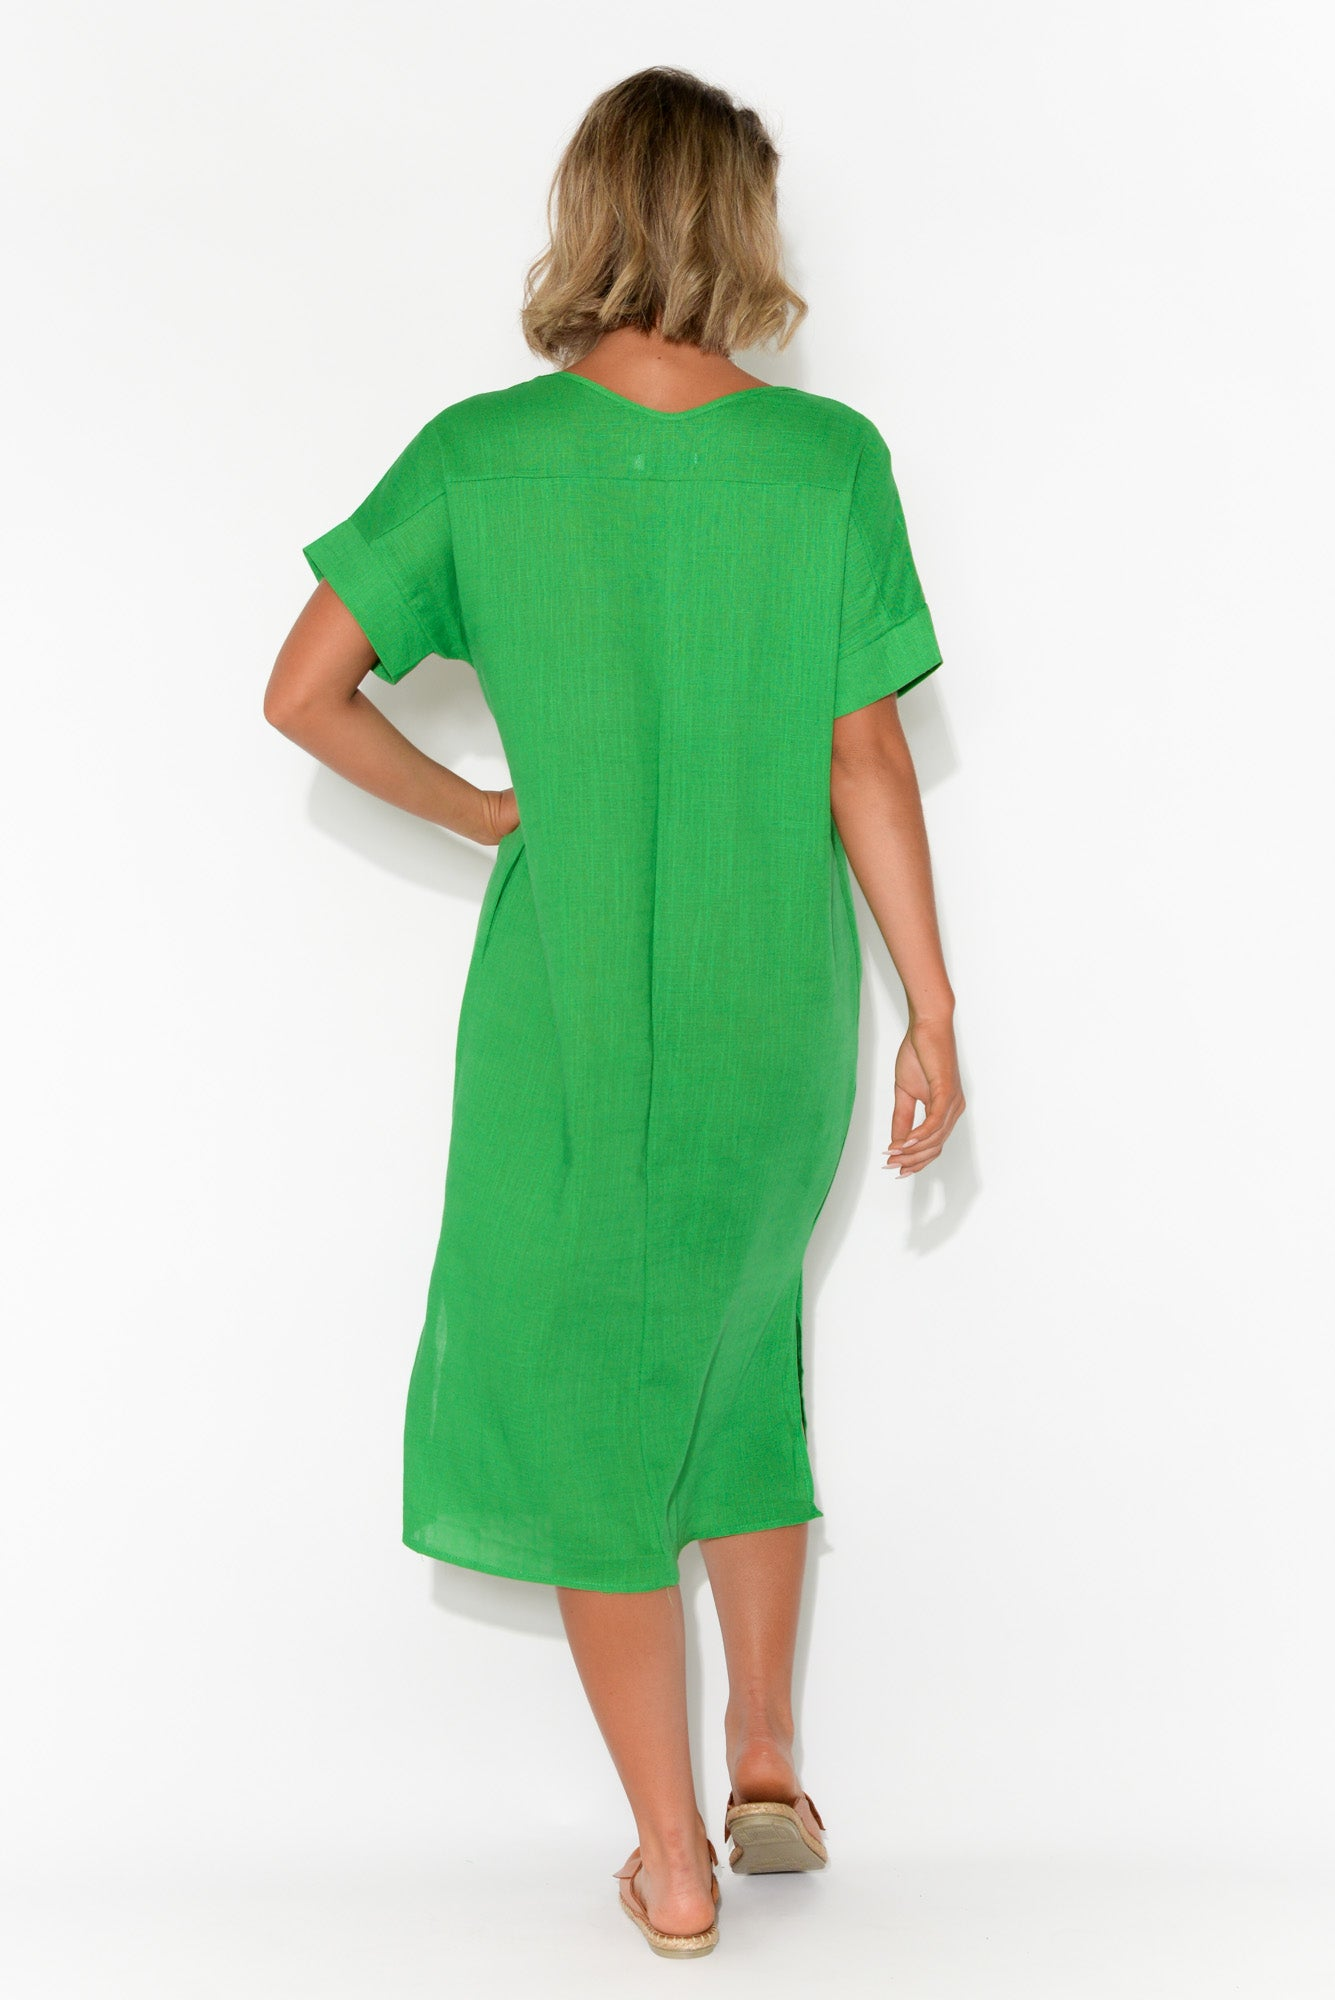 Hannah Green Linen Cotton Dress